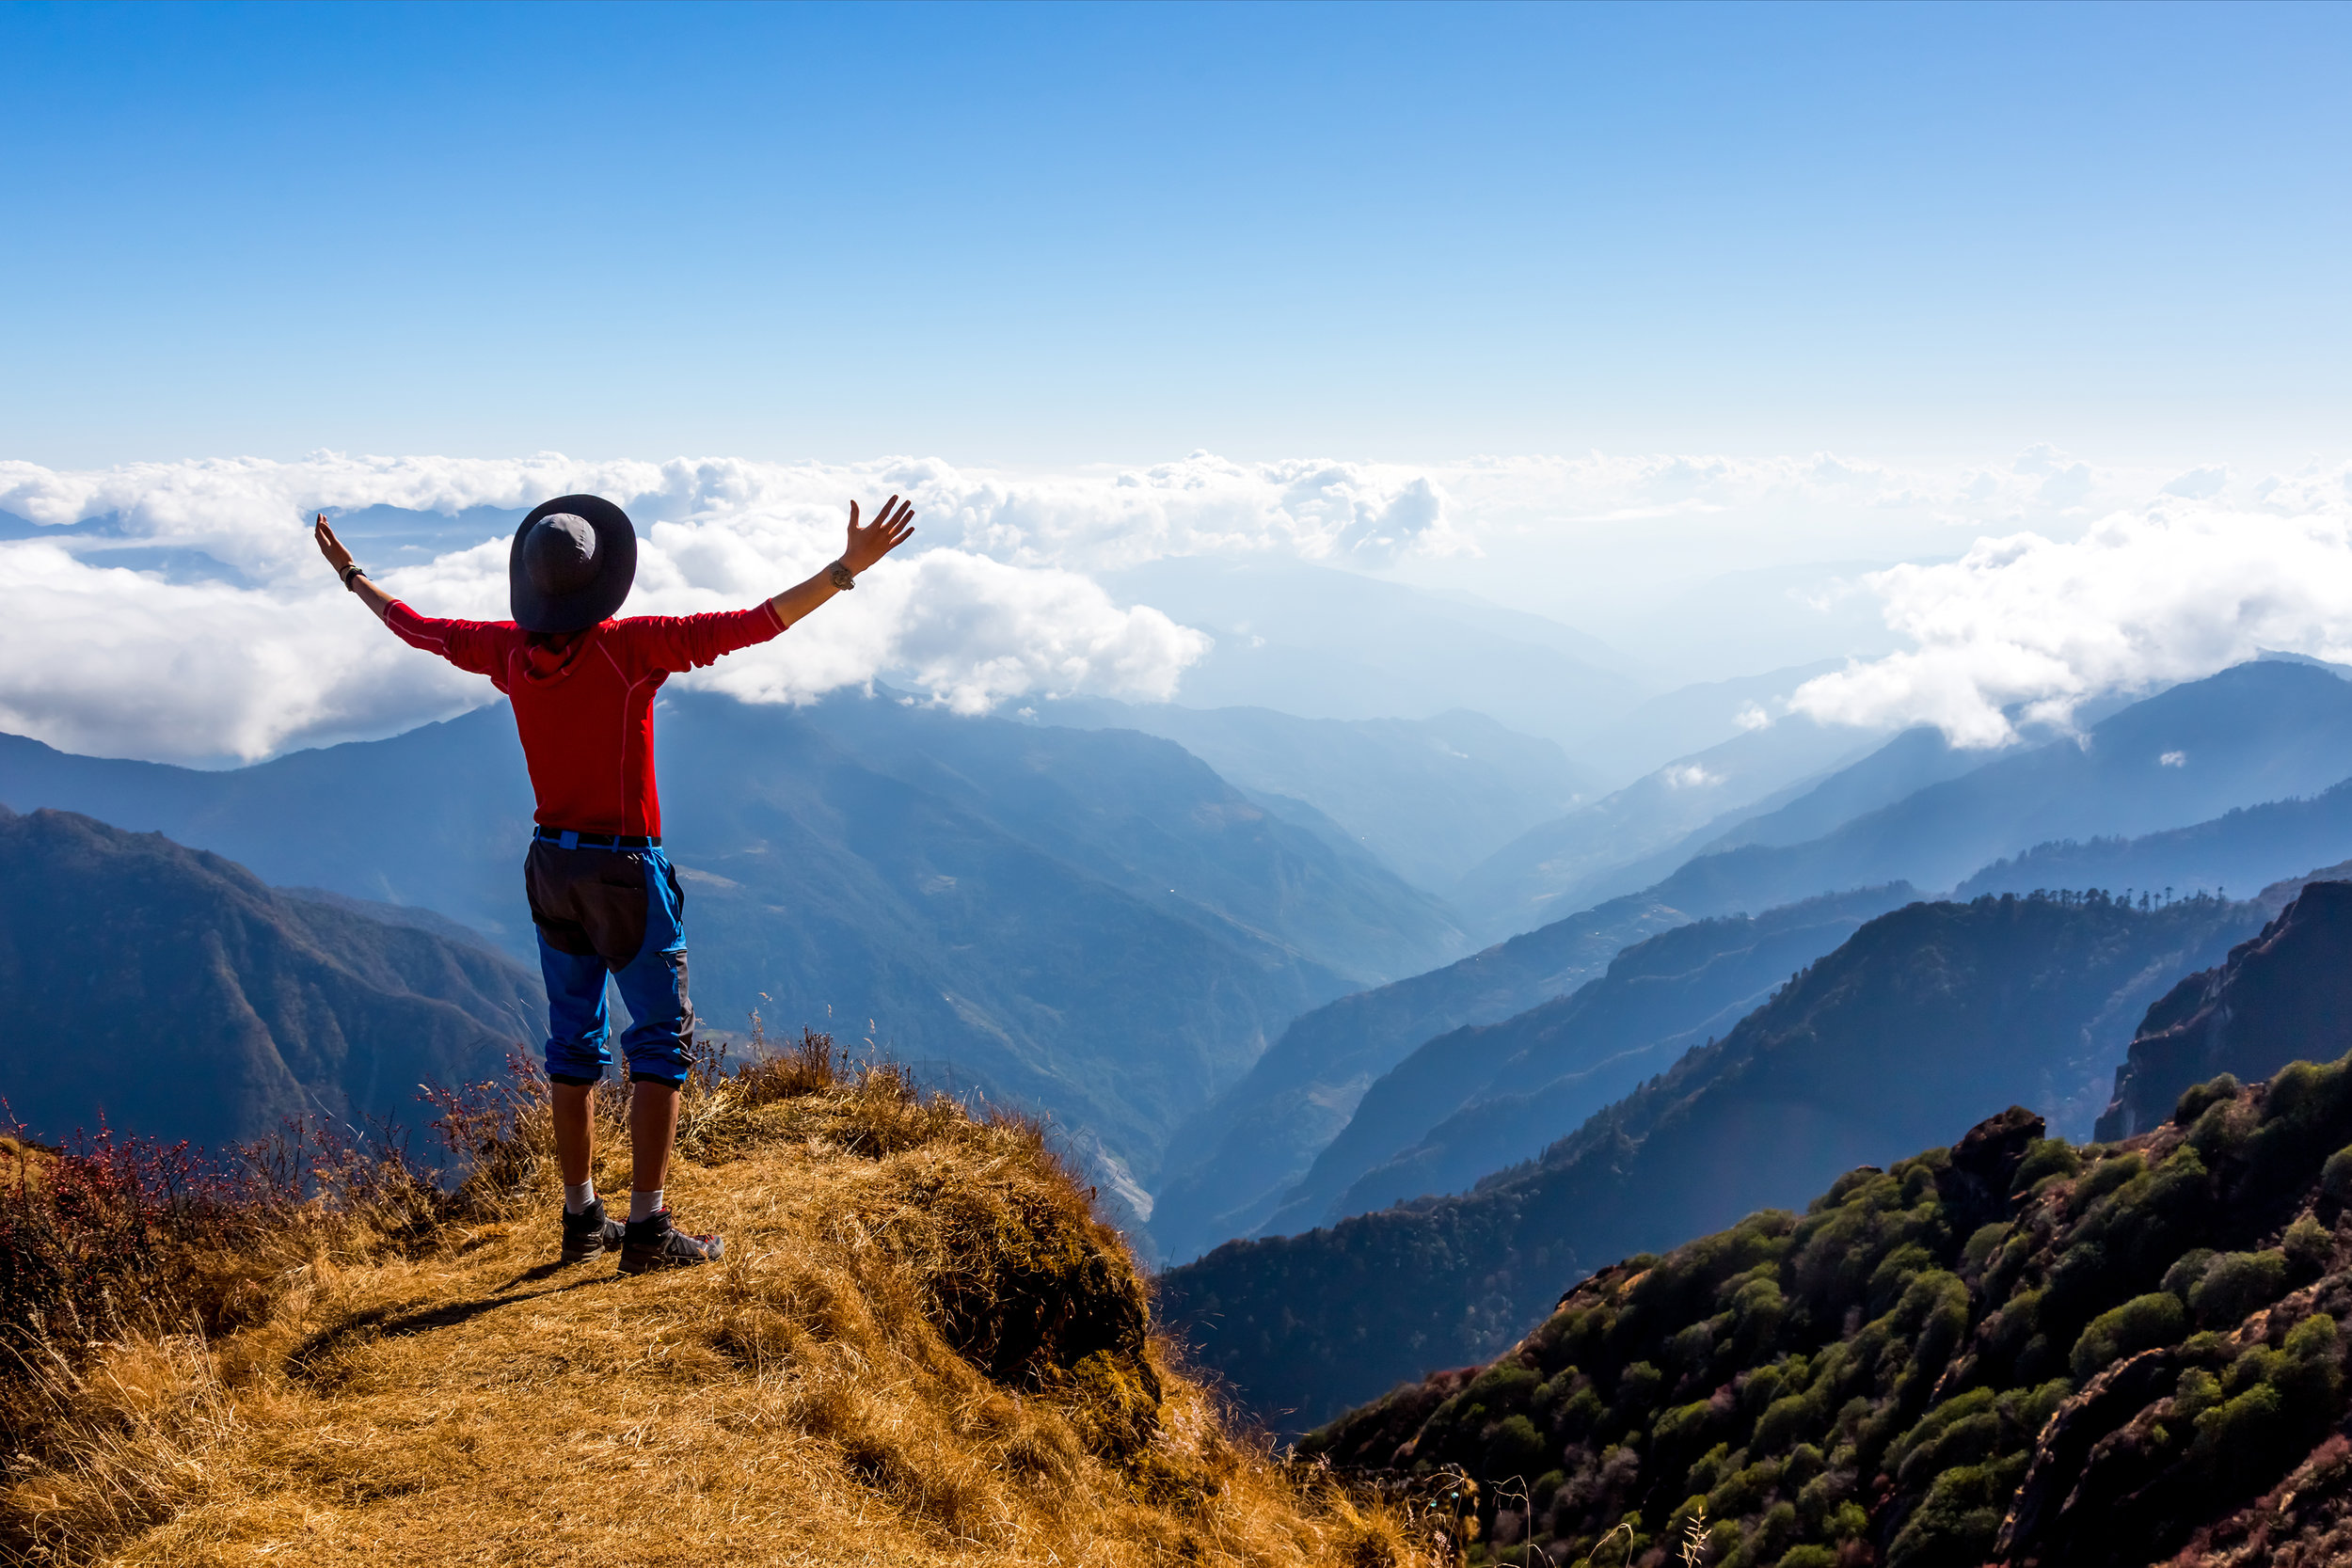 Sunny Mountains Horizon View and Silhouette of happy excited Person staying on Cliff and making I feel well gesture.jpg